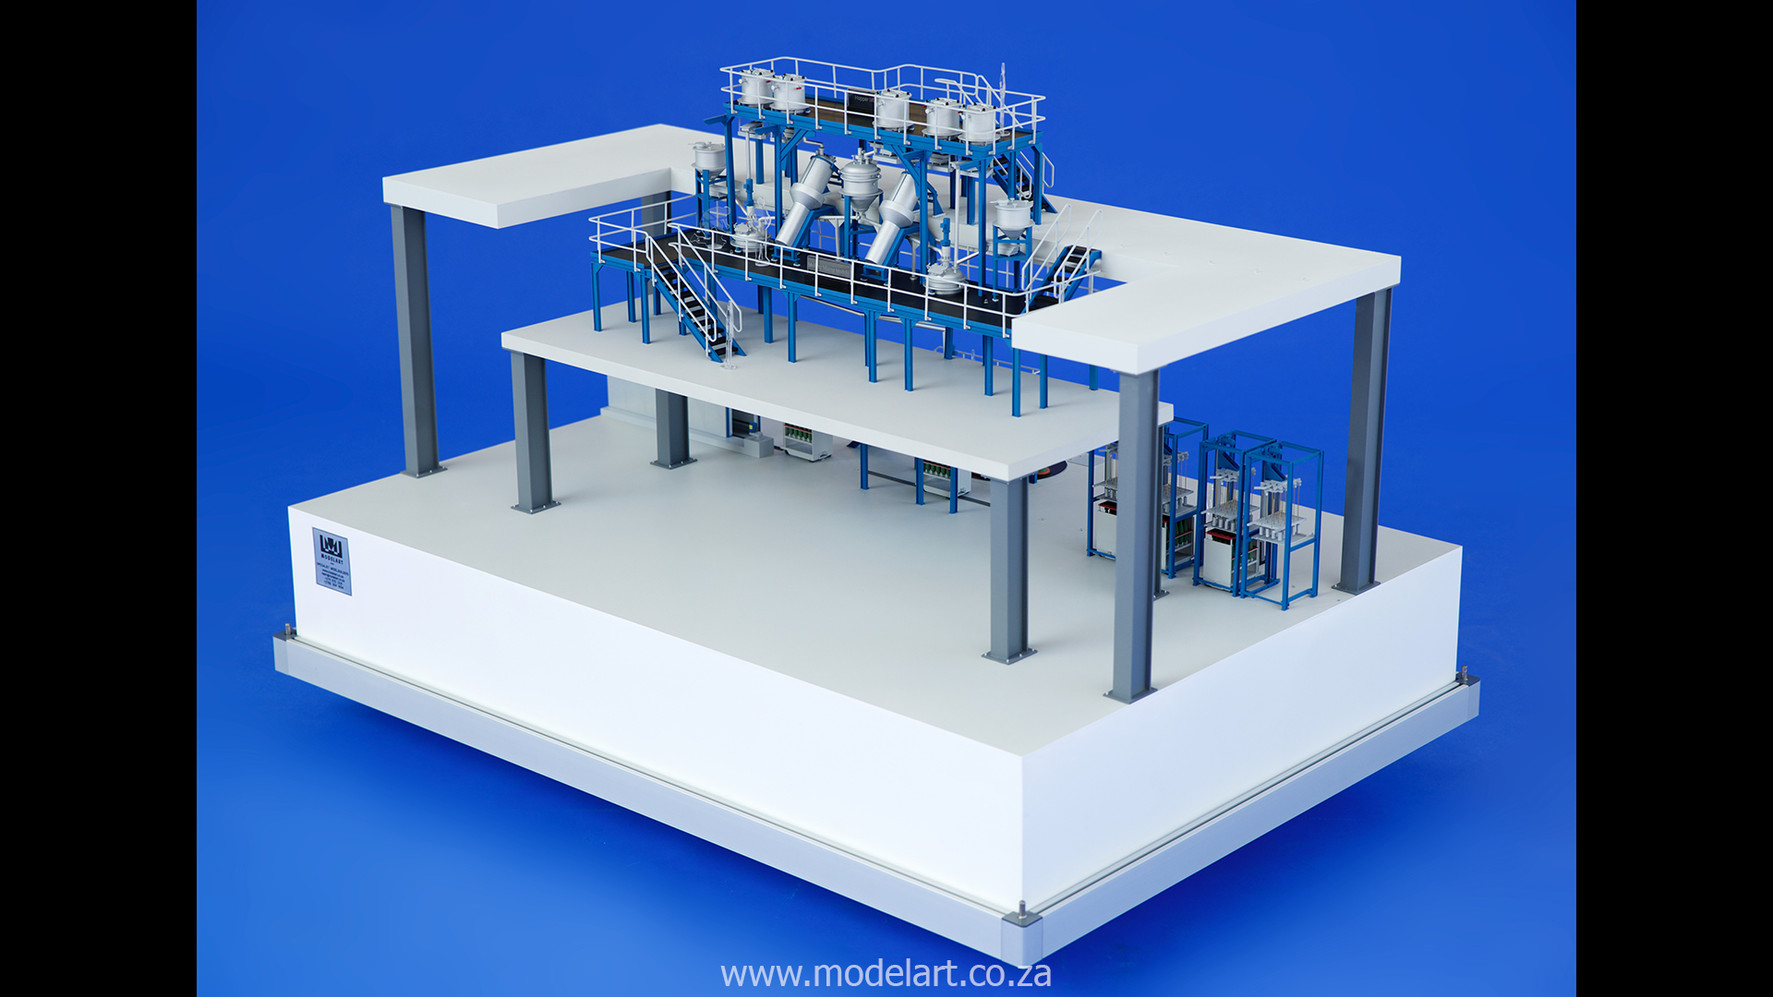 Architectural-Scale-Model-Engineering-Denel Munitions Plant 2-1